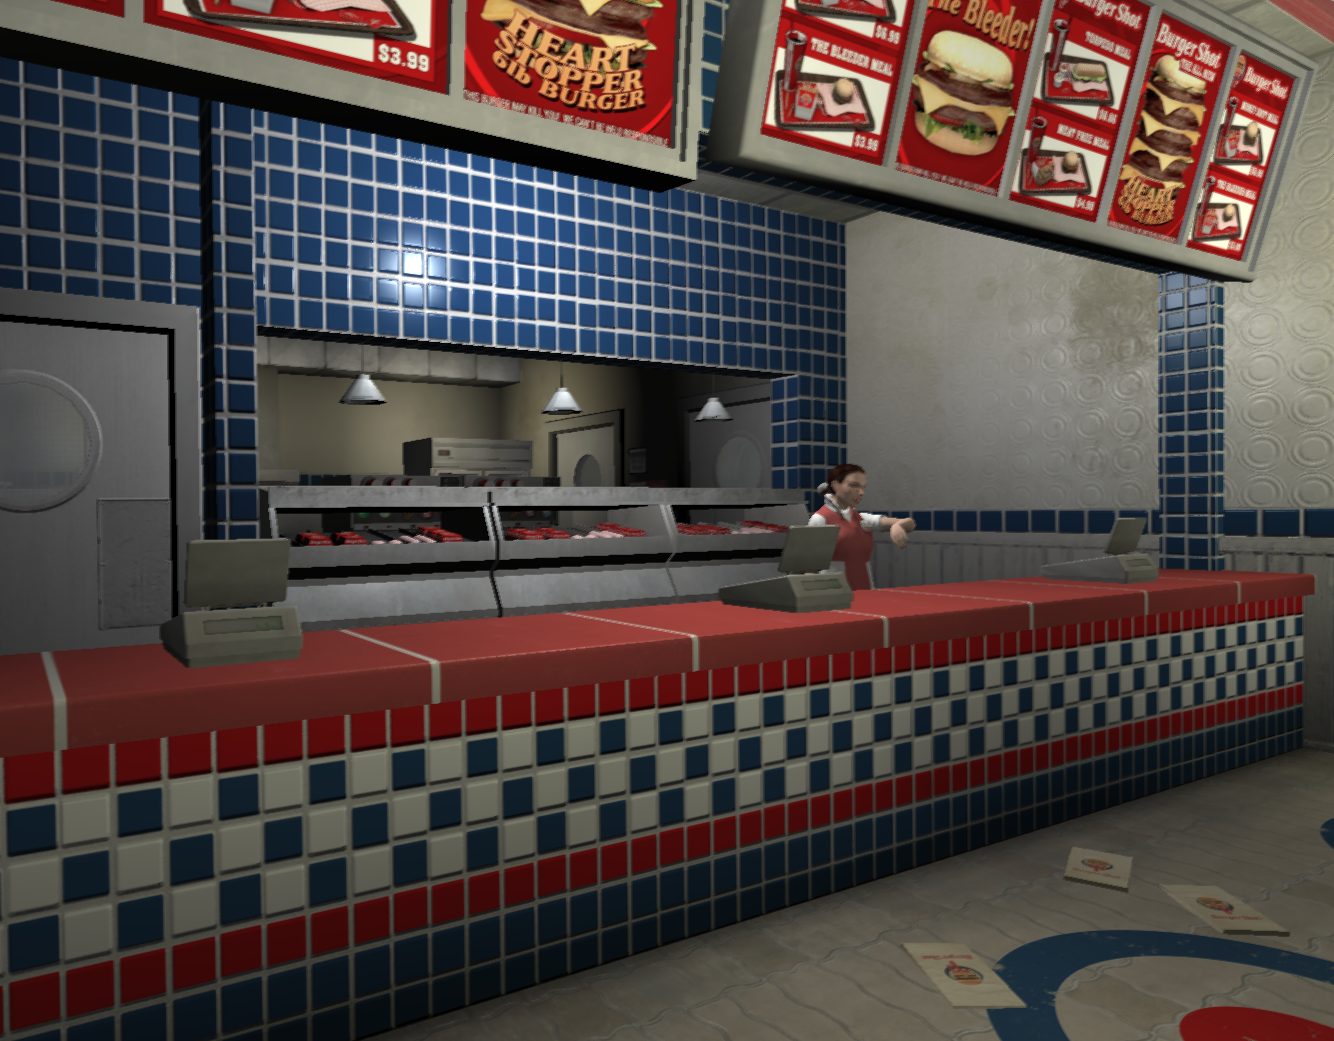 Burger Shot Interior by GTA-IVplayer